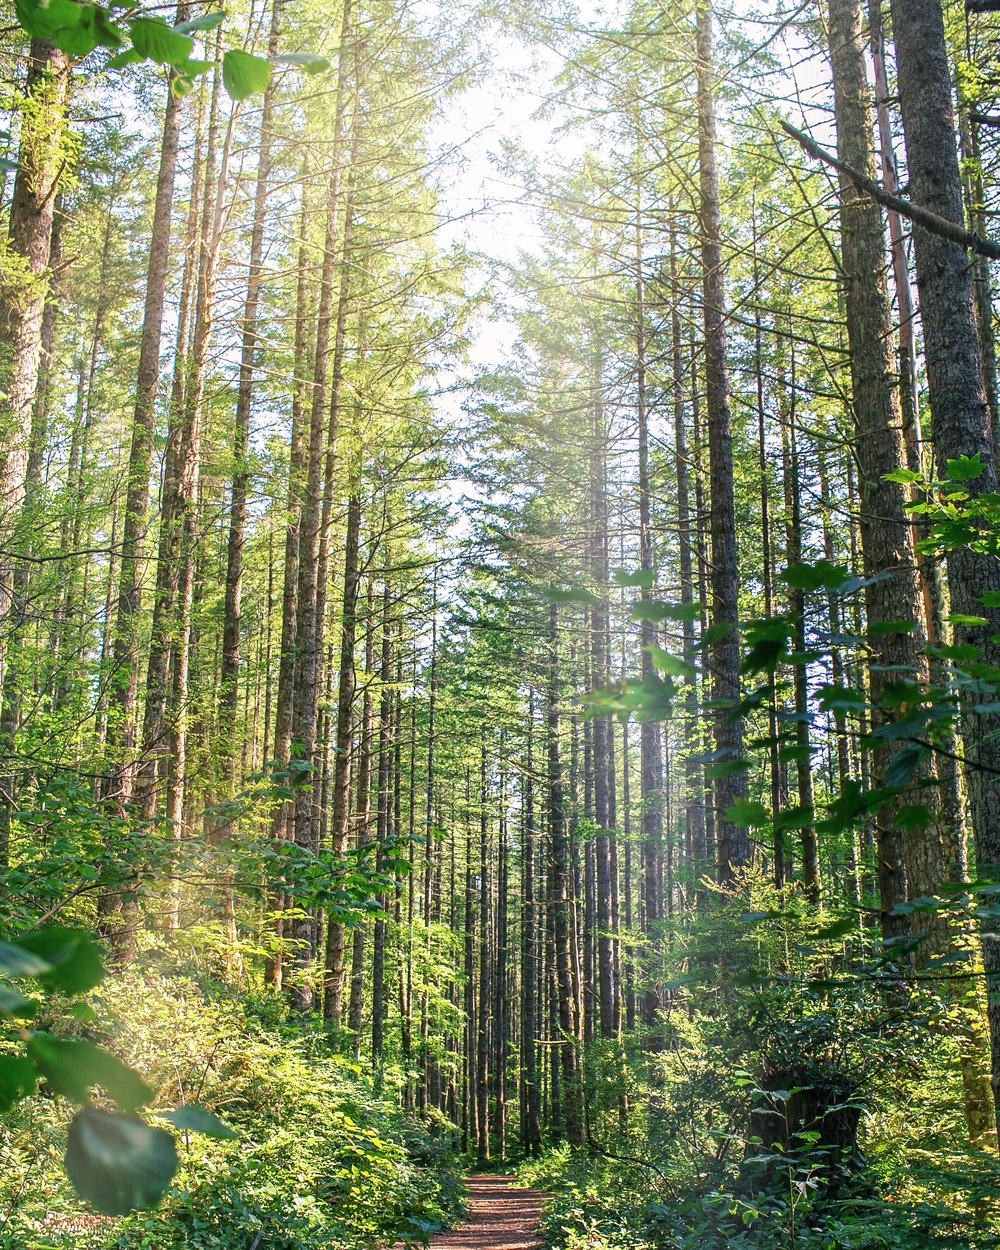 Trees during the Rattlesnake Ledge/Lake hike in Seattle